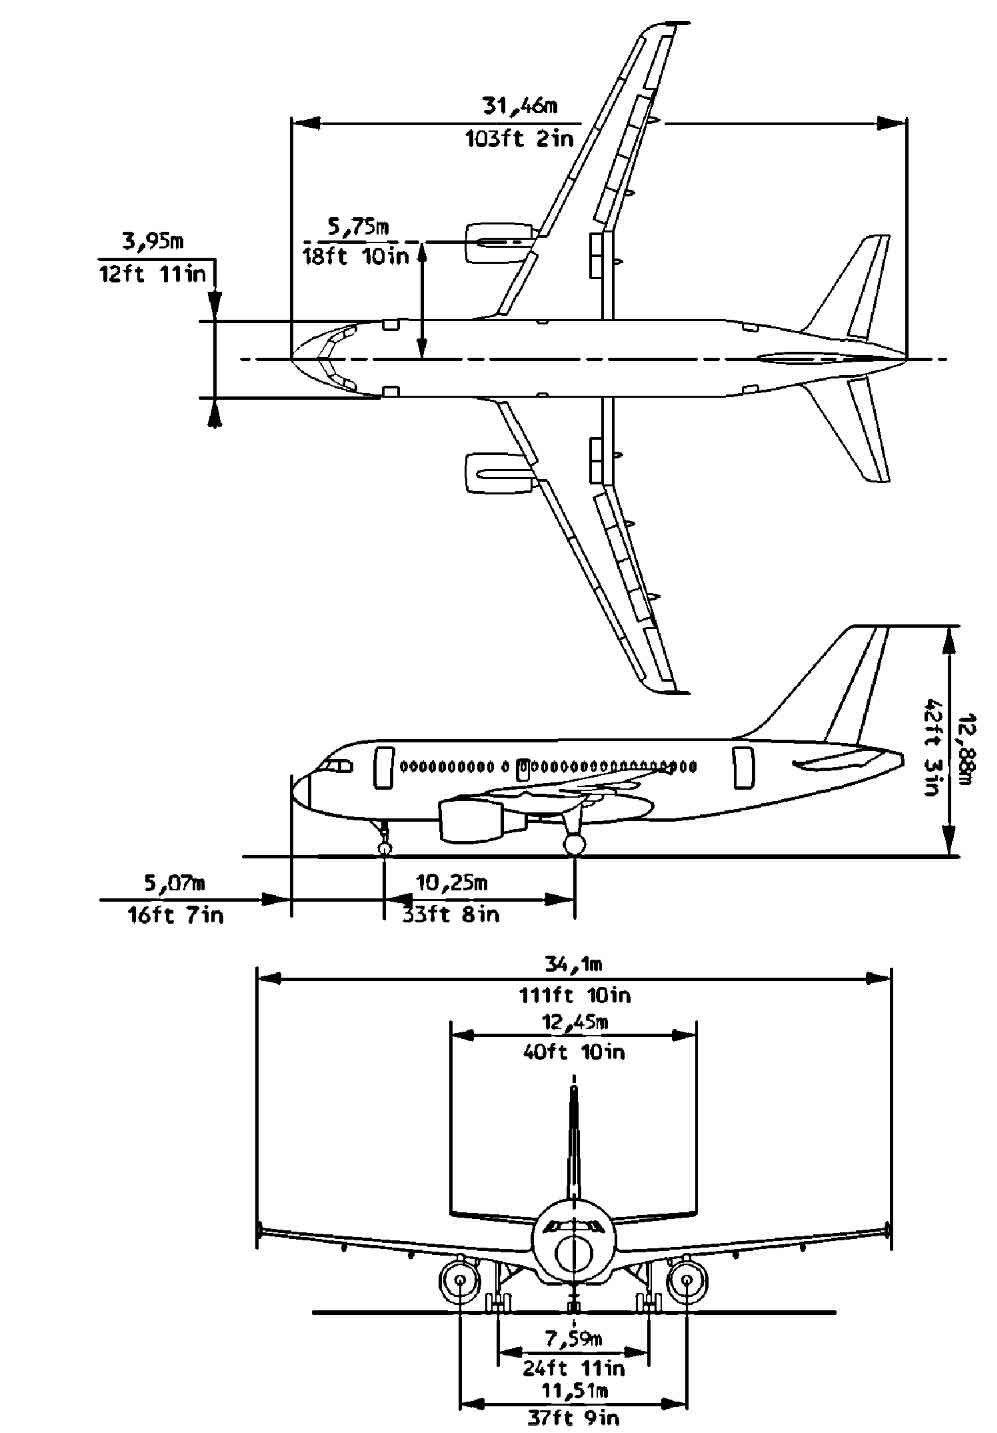 Airbus A320 Dimensions Pictures To Pin